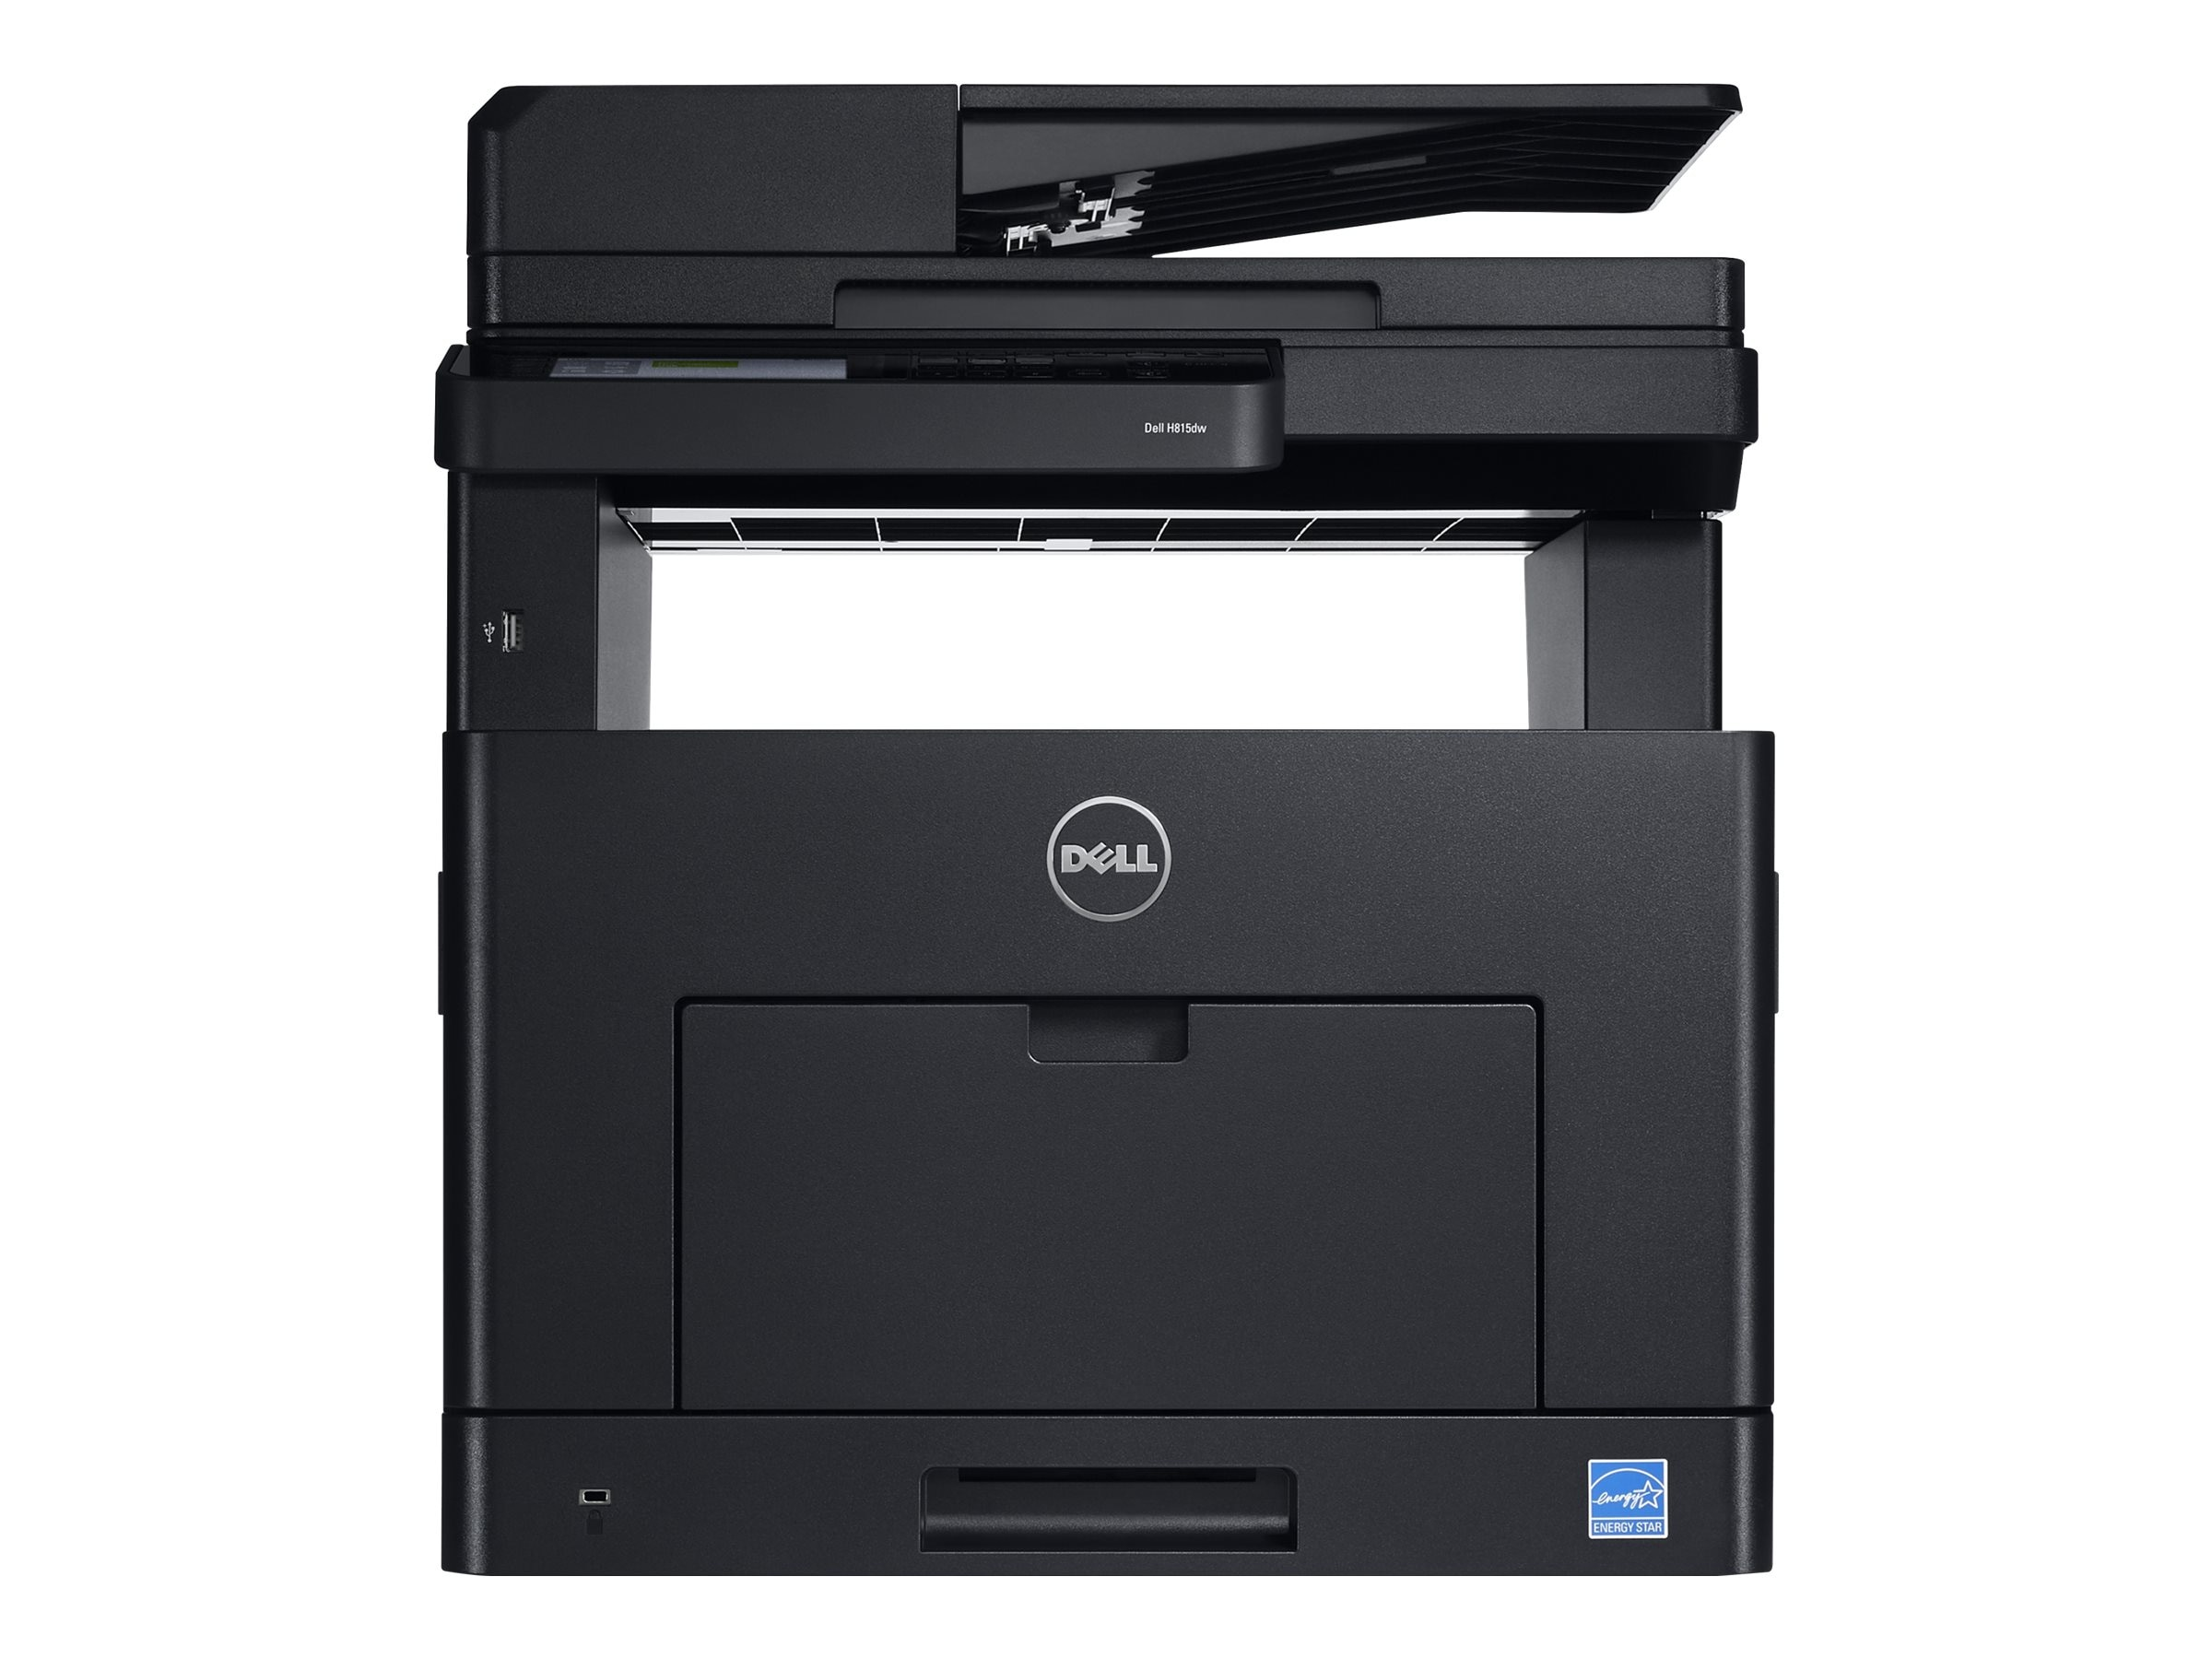 Dell Cloud Multifunction Printer - H815dw, H815DW